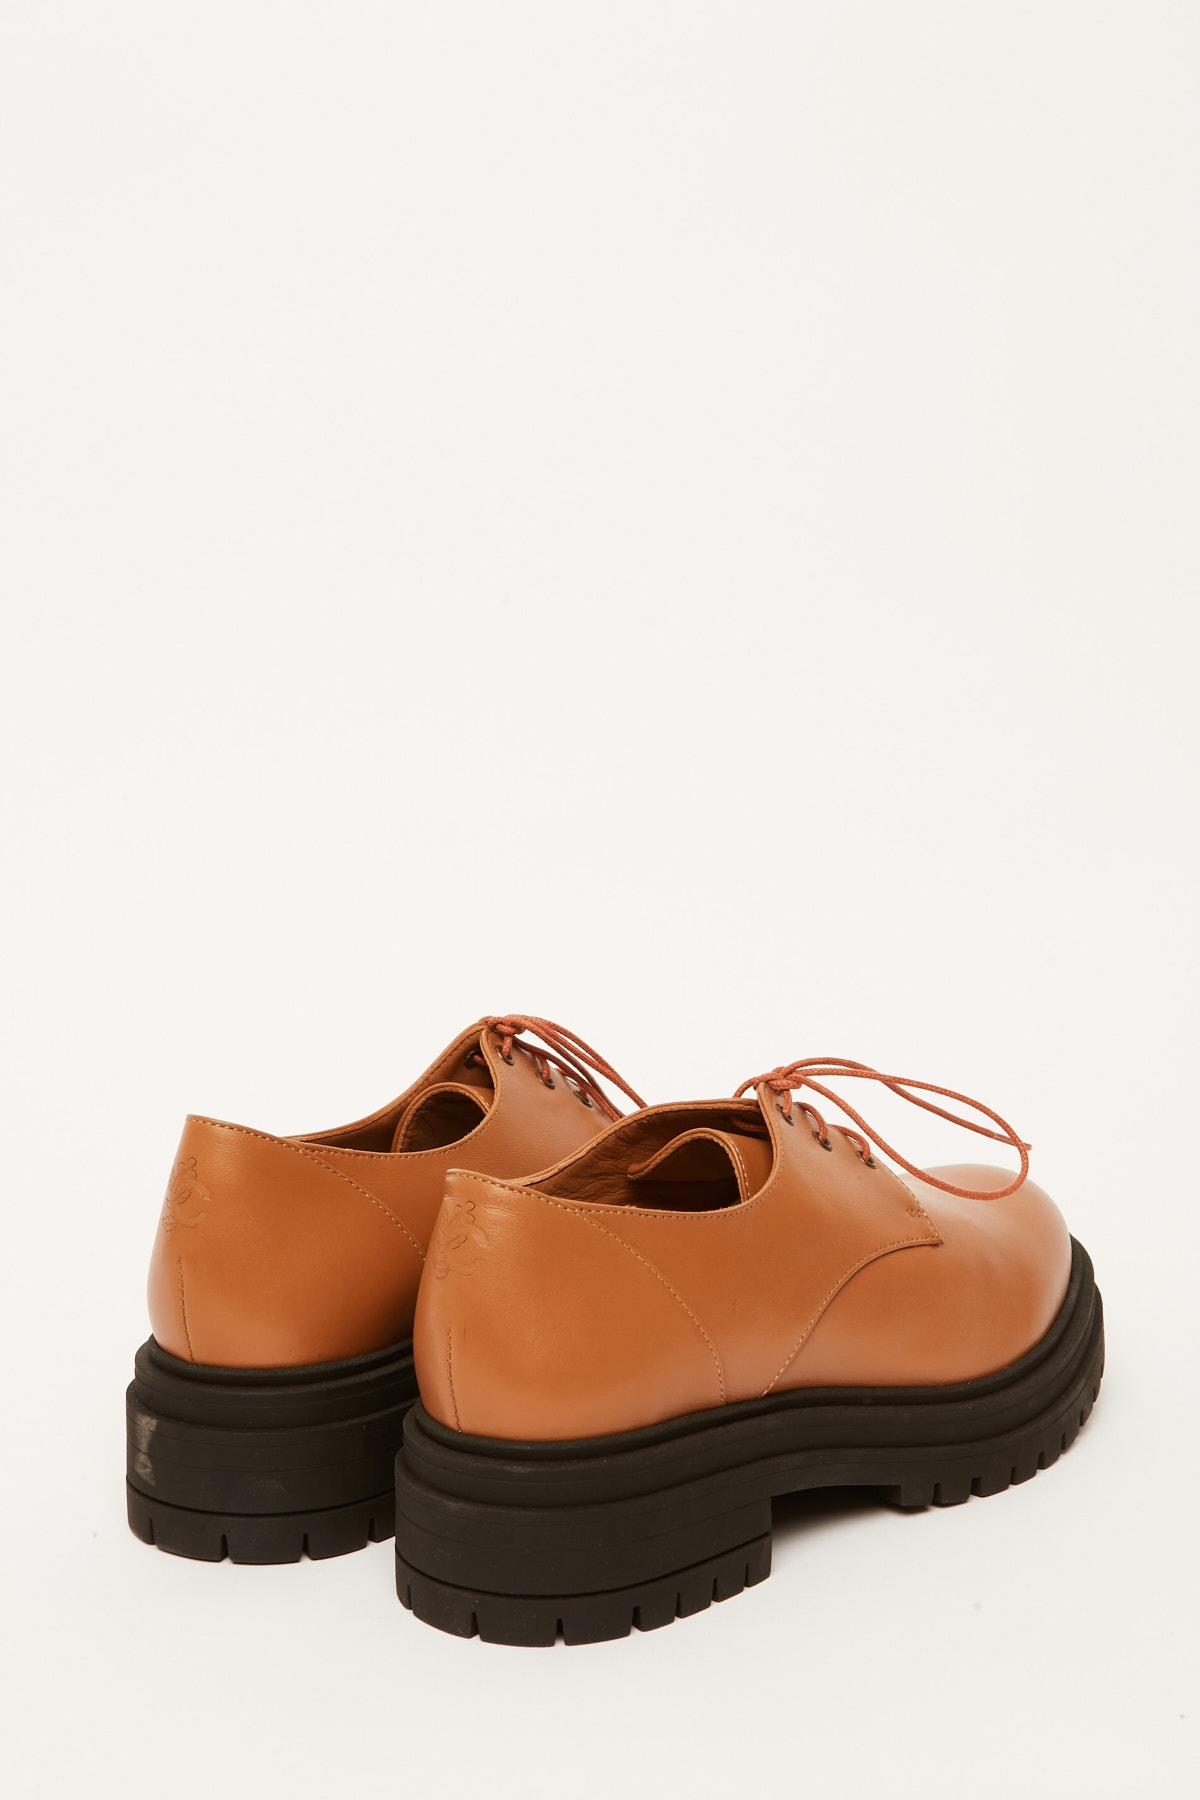 CHAUSSURES FAUSTINE